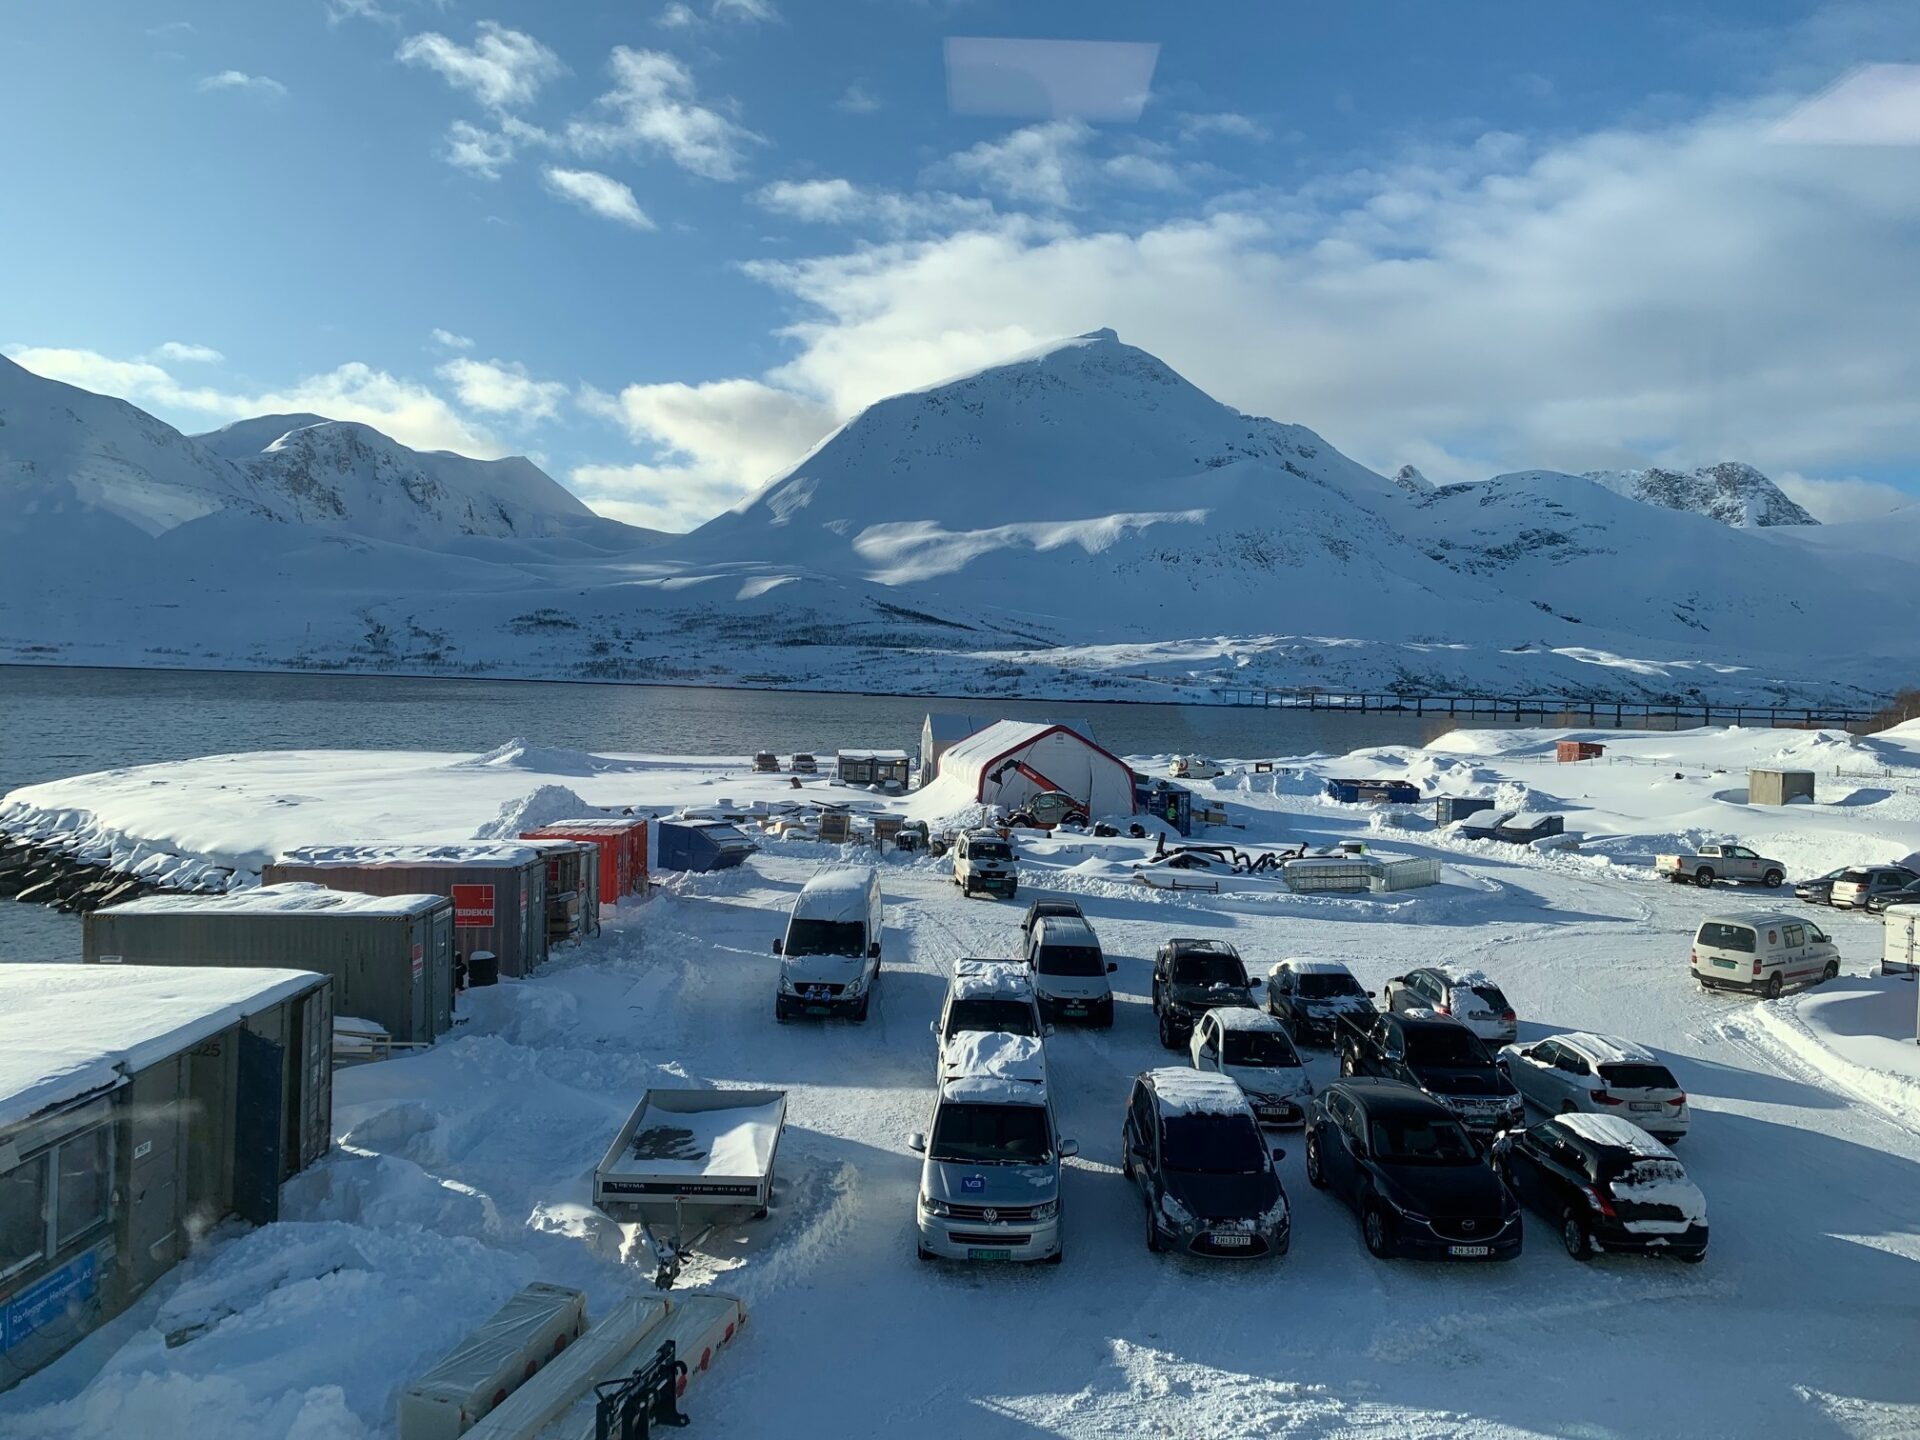 Overview picture of barracks on sandoera in winter